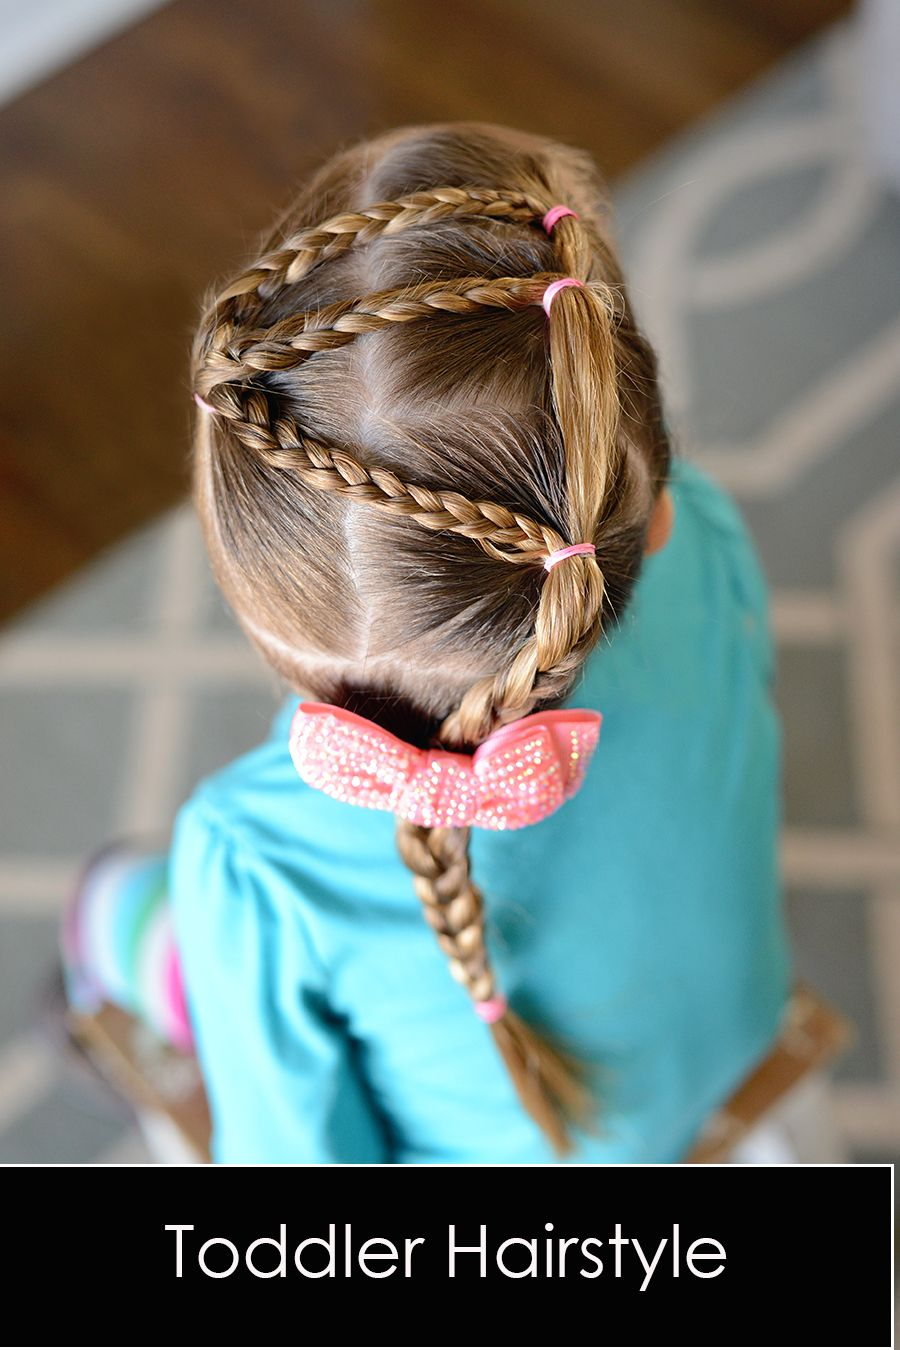 Cute toddler hairstyle for little girls with fine or short hair